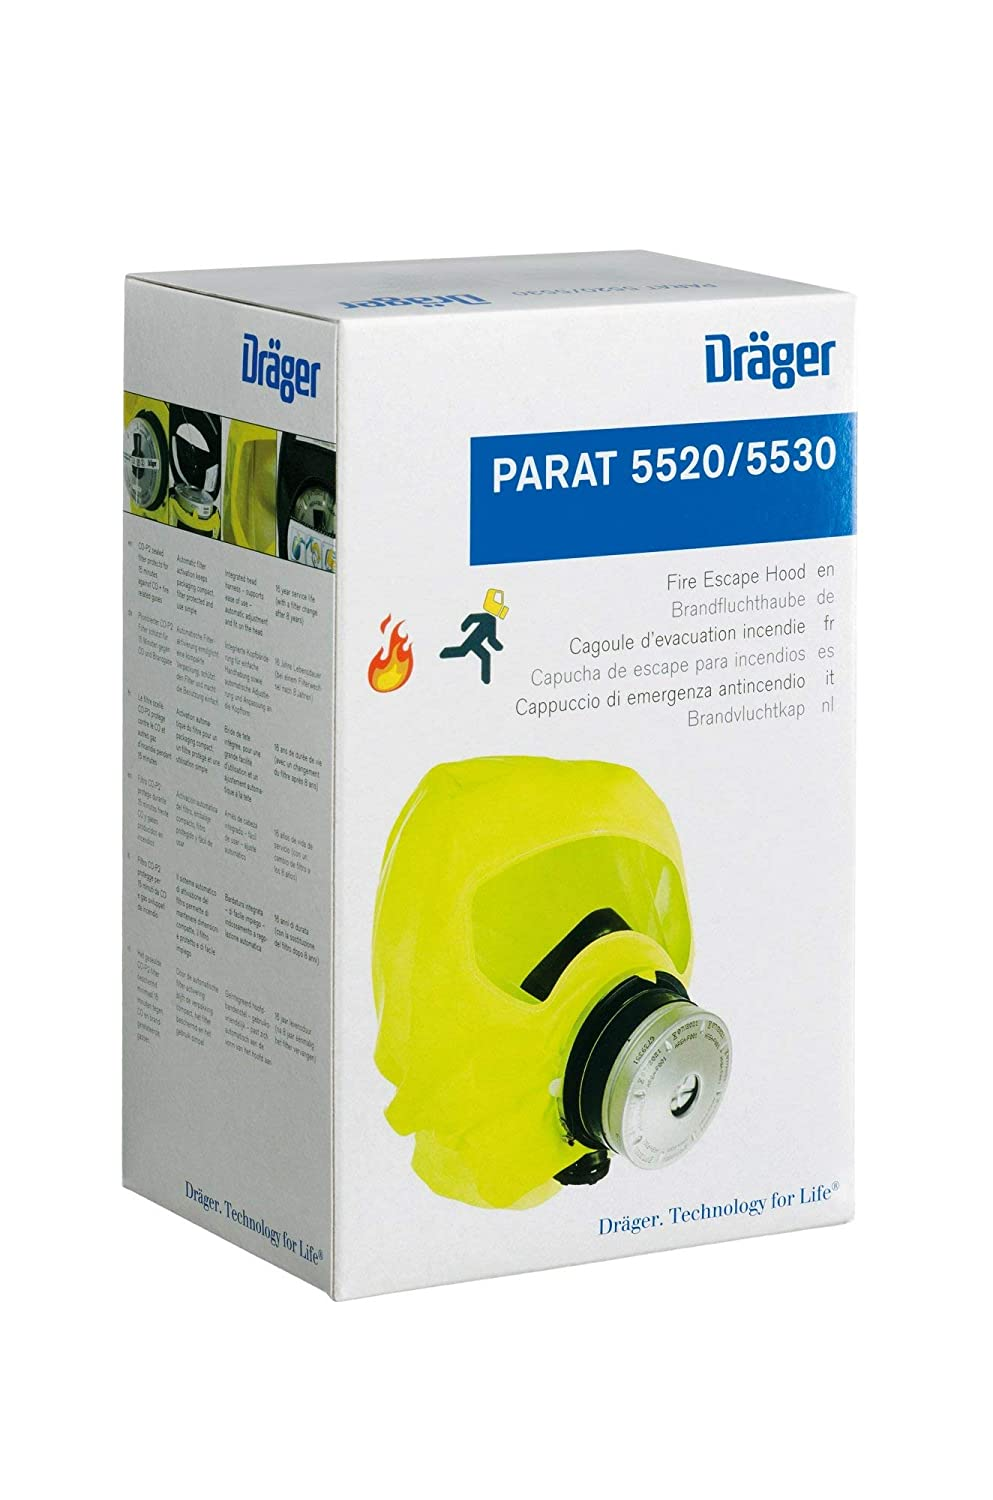 Dräger PARAT 5520 Fire Escape Hood | Fire Emergency Smoke Hood | Breathing Protection in Emergency Situations | Anti-Fog Coating | Safe Evacuation (e.g. ...